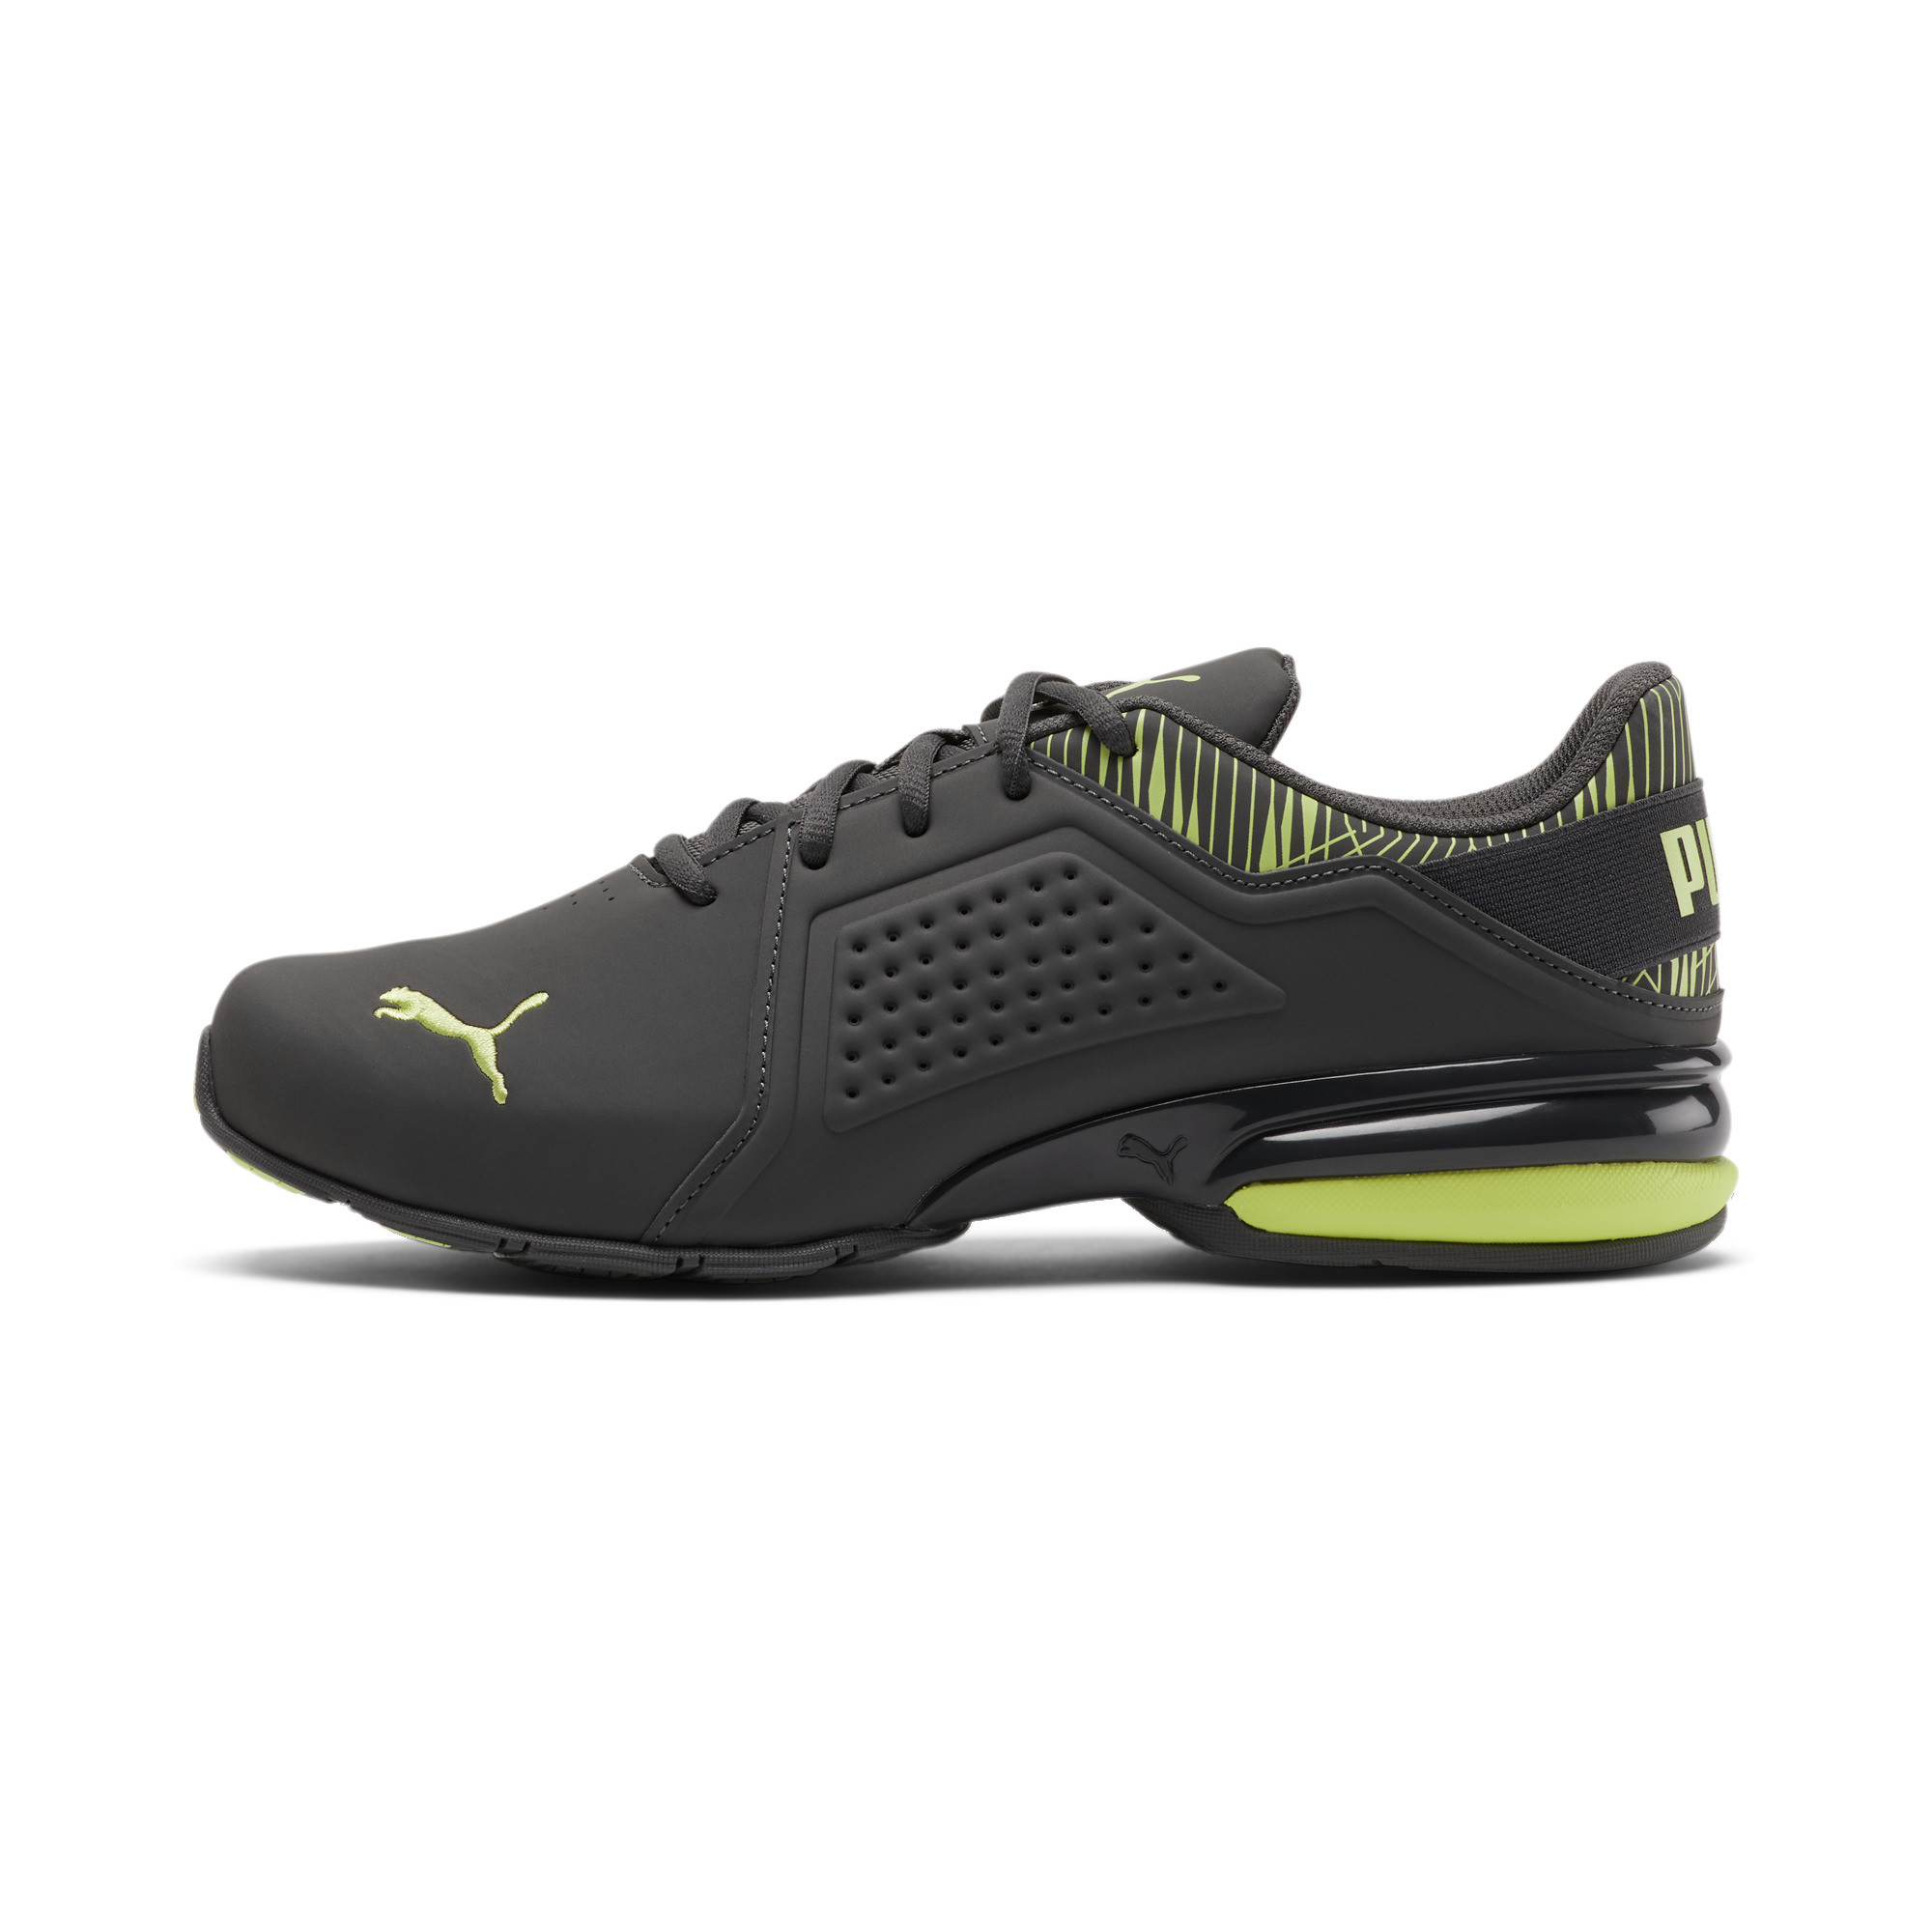 PUMA-Men-039-s-Viz-Runner-Graphic-Sneakers thumbnail 22